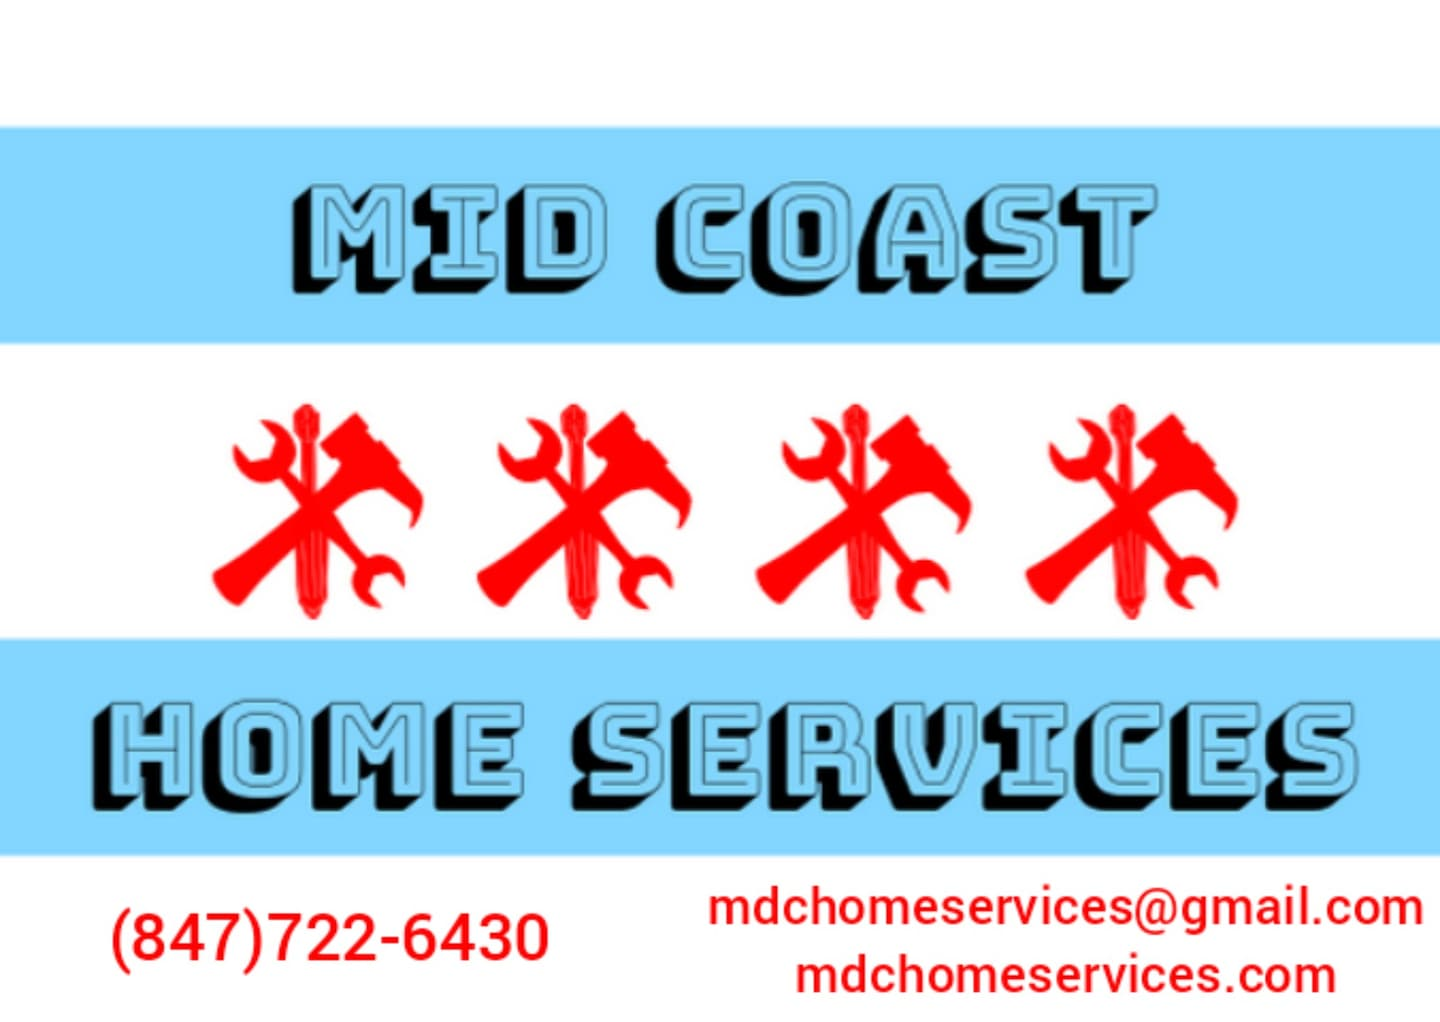 Mid Coast Home Services